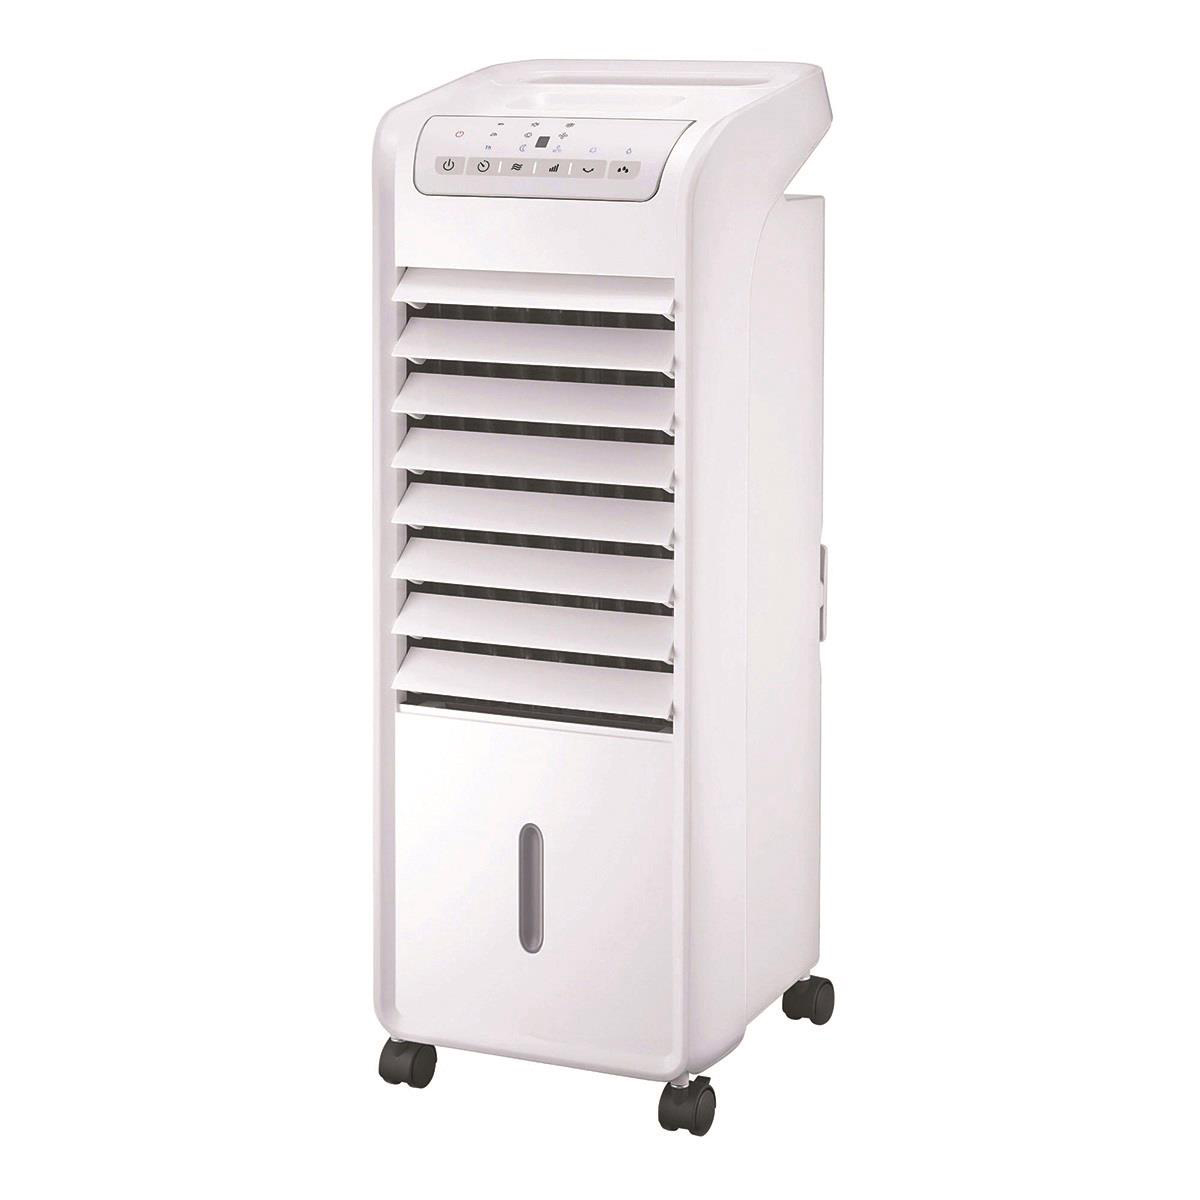 Image for Air Cooler Portable with Oscillation Function Timer Remote Control White